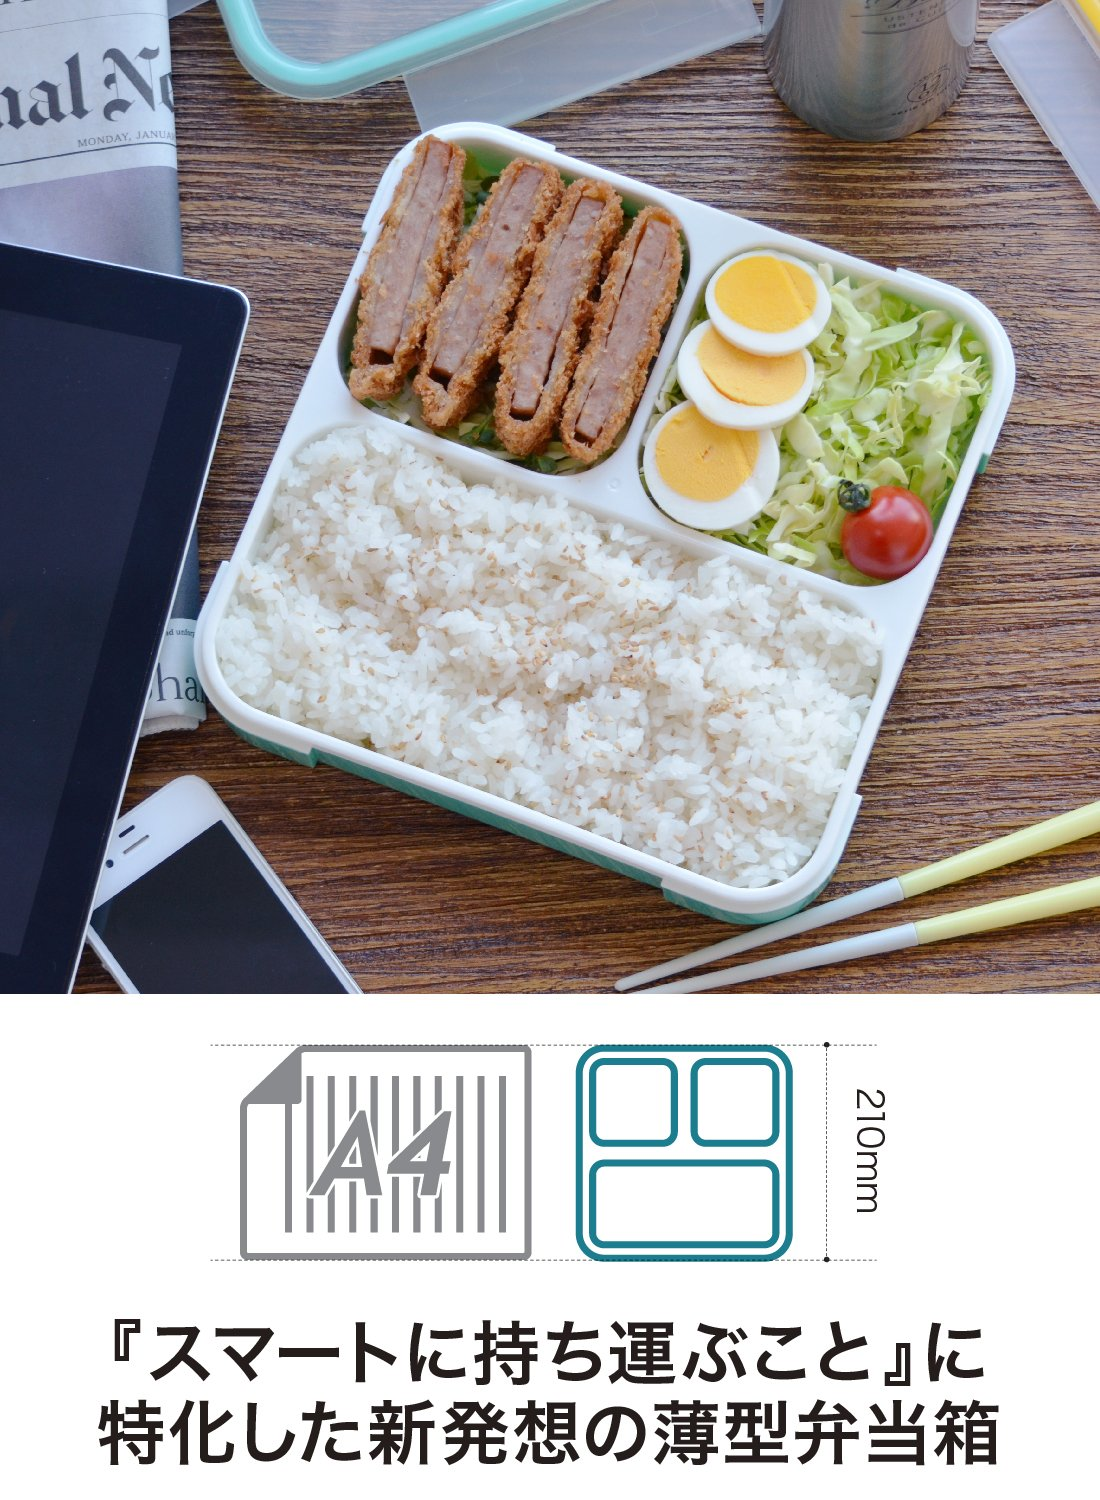 Amazon.com: FOODMAN Thin lunch box 800ml(Japan import) by CB JAPAN ...